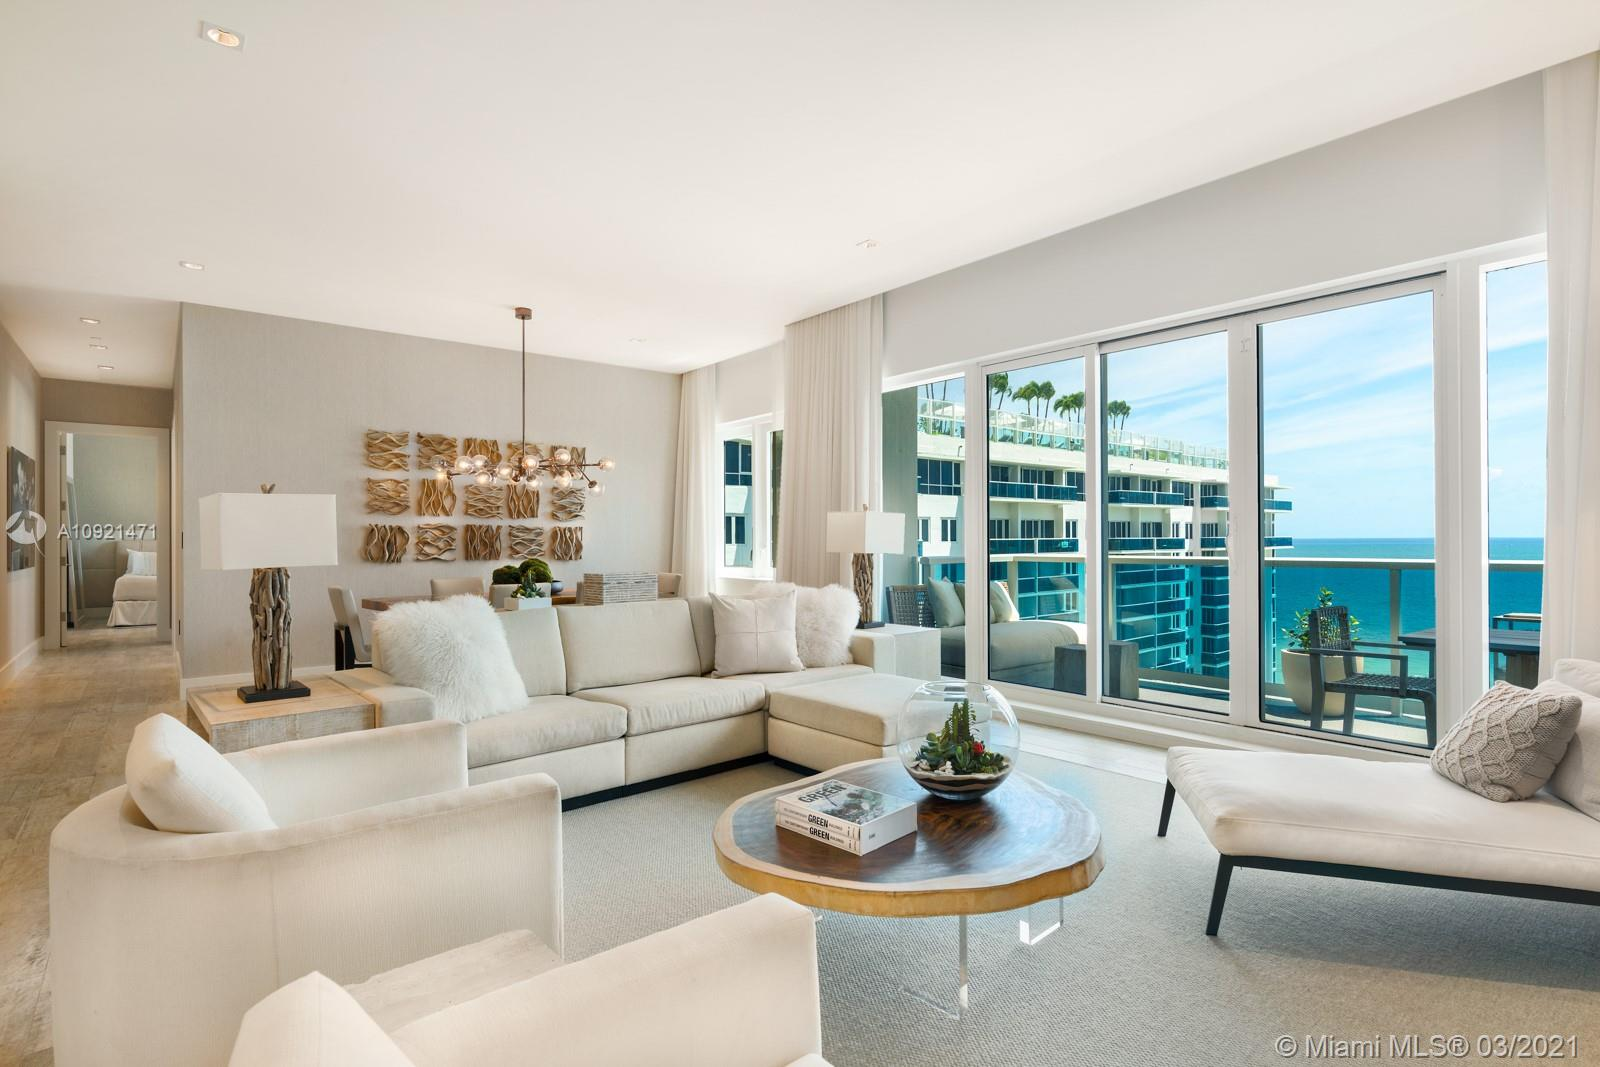 Enjoy the sounds of the ocean in your direct ocean view trophy Penthouse located at 1 Hotel & Homes, South Beach!Featuring lavish home elements, delivered fully furnished by Brazilian designer Debora Aguiar.Bring the outside in, floor to ceiling sliding doors make this spacious 5 bed + maids quarters, 4.5 baths w/ 2,792 sqft. seem endless.Experience hotel living with access to all services including housekeeping, valet, concierge, in-room dining, 14,000 sqft gym, Bamford Haybarn SPA, Restaurants, Rooftop pool & more!